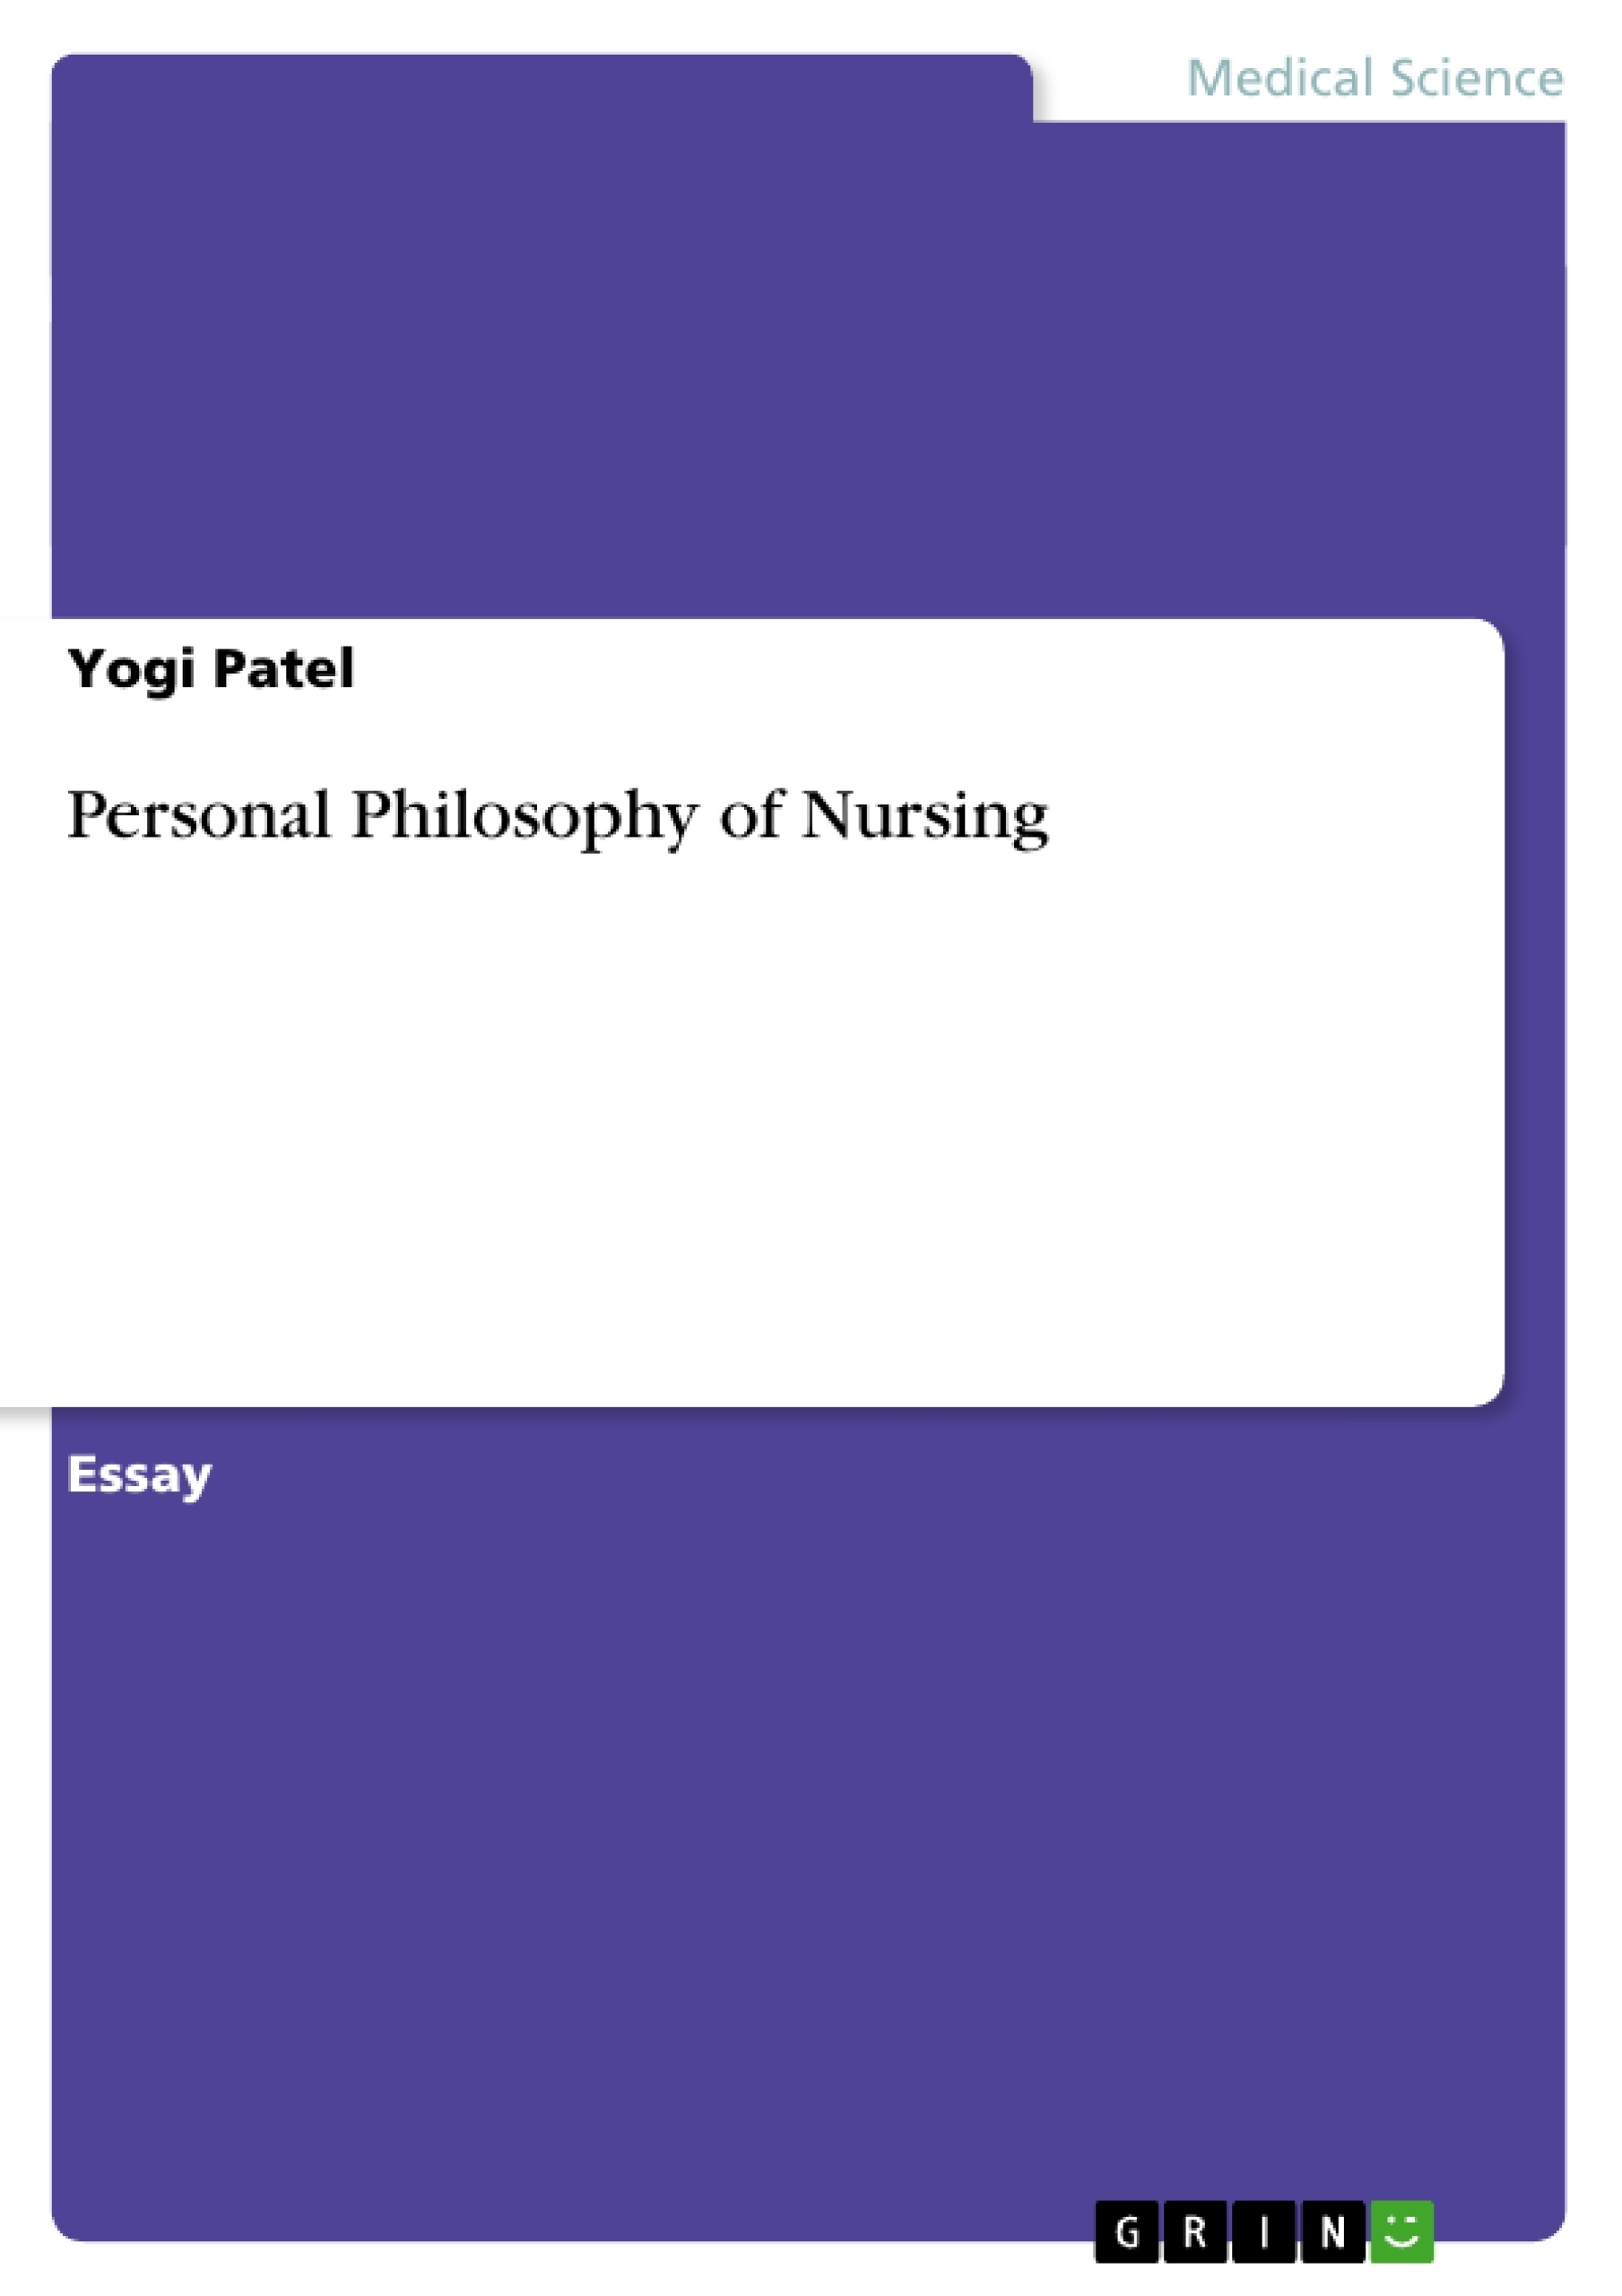 personal philosophy of nursing publish your master s thesis personal philosophy of nursing publish your master s thesis bachelor s thesis essay or term paper